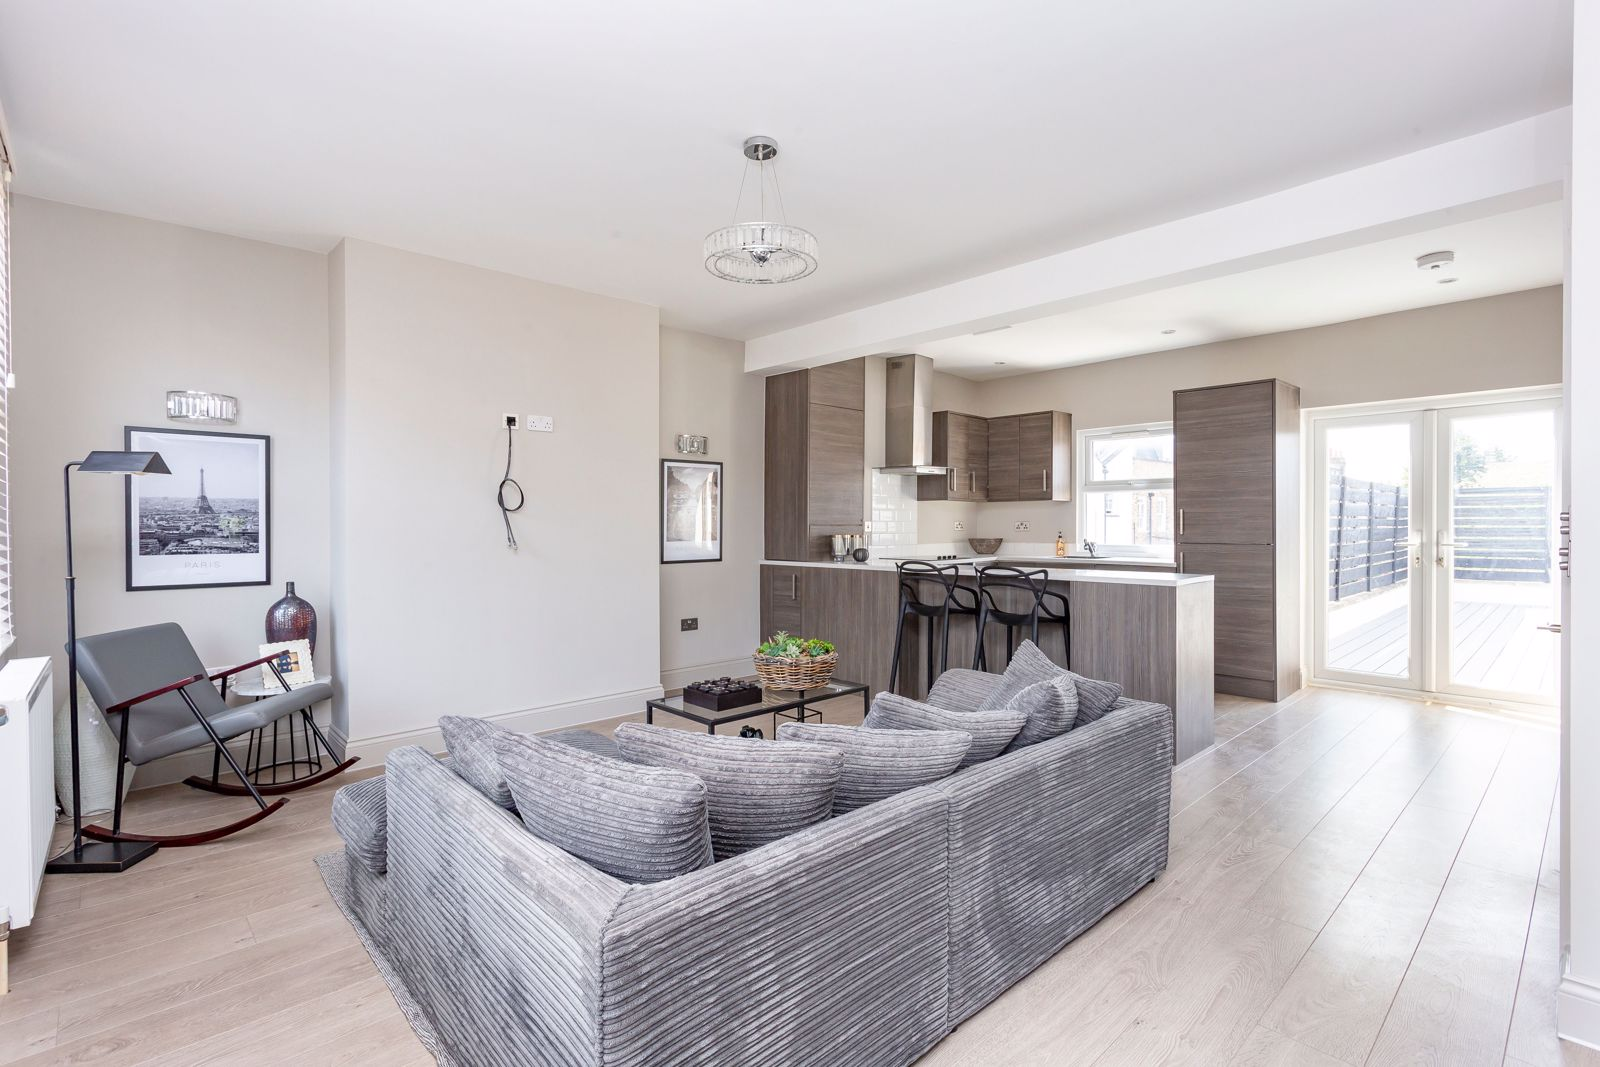 4 Bedroom Apartment For Sale in London, N1